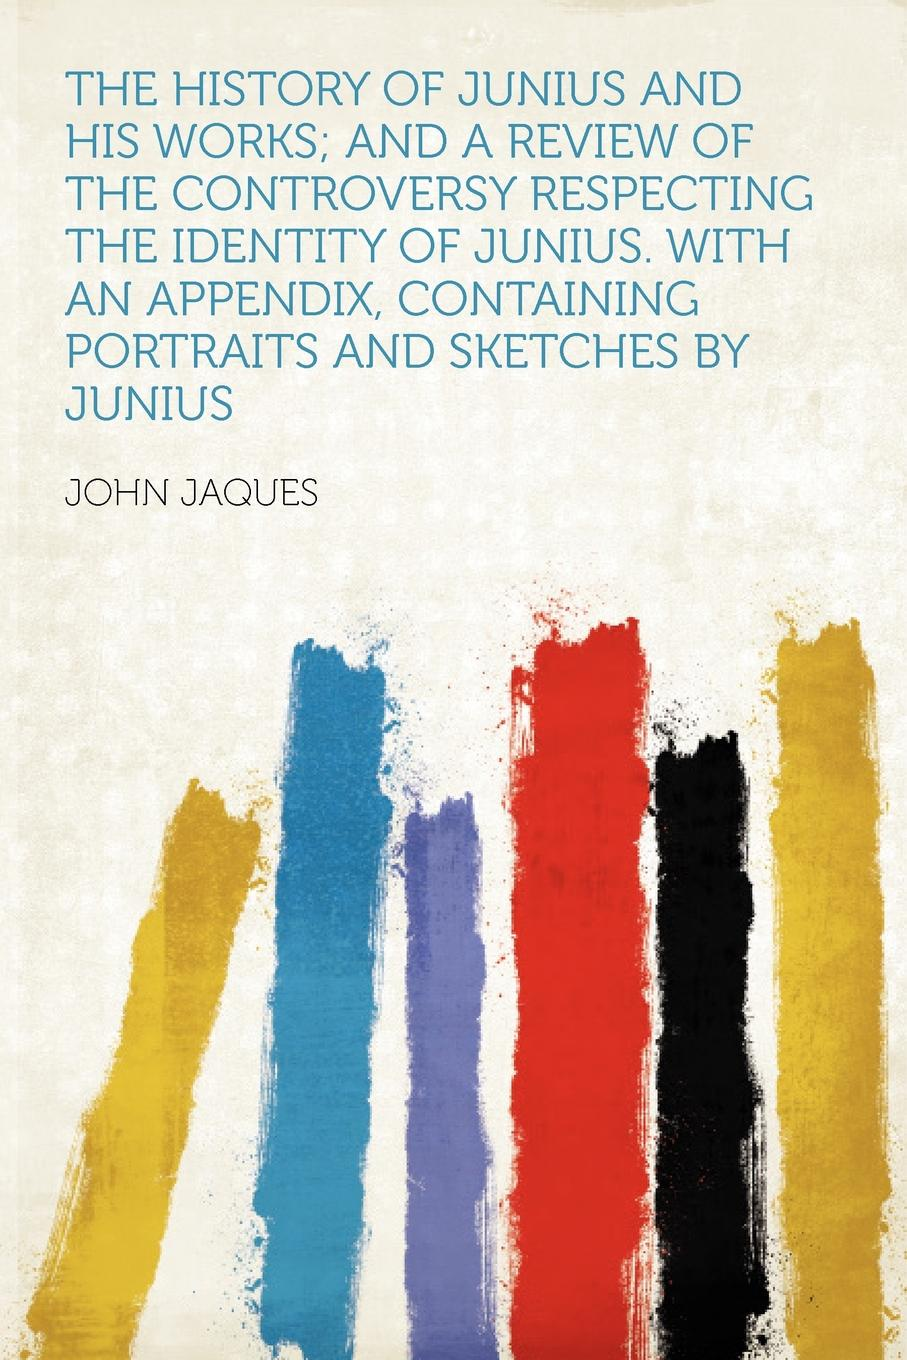 The History of Junius and His Works; and a Review of the Controversy Respecting the Identity of Junius. With an Appendix, Containing Portraits and Sketches by Junius thomas busby arguments and facts demonstrating that the letters of junius were written by john lewis de lolme accompanied with memoirs of that most ingenious foreigner with preface of junius